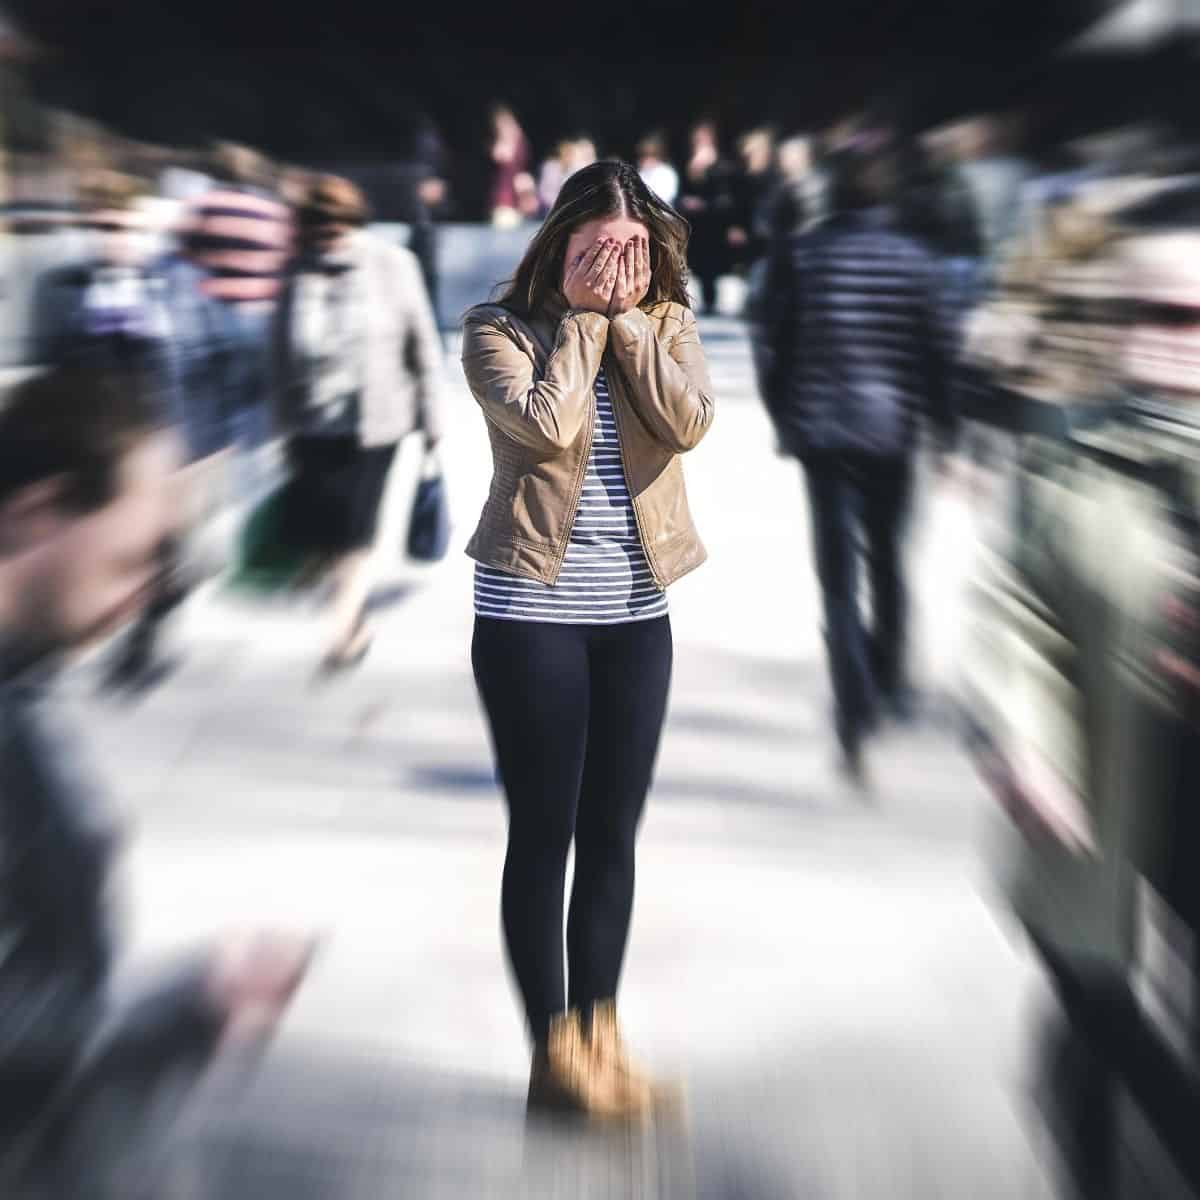 young woman is the focus in the middle of a crowded sidewalk while she hides her face in her hands